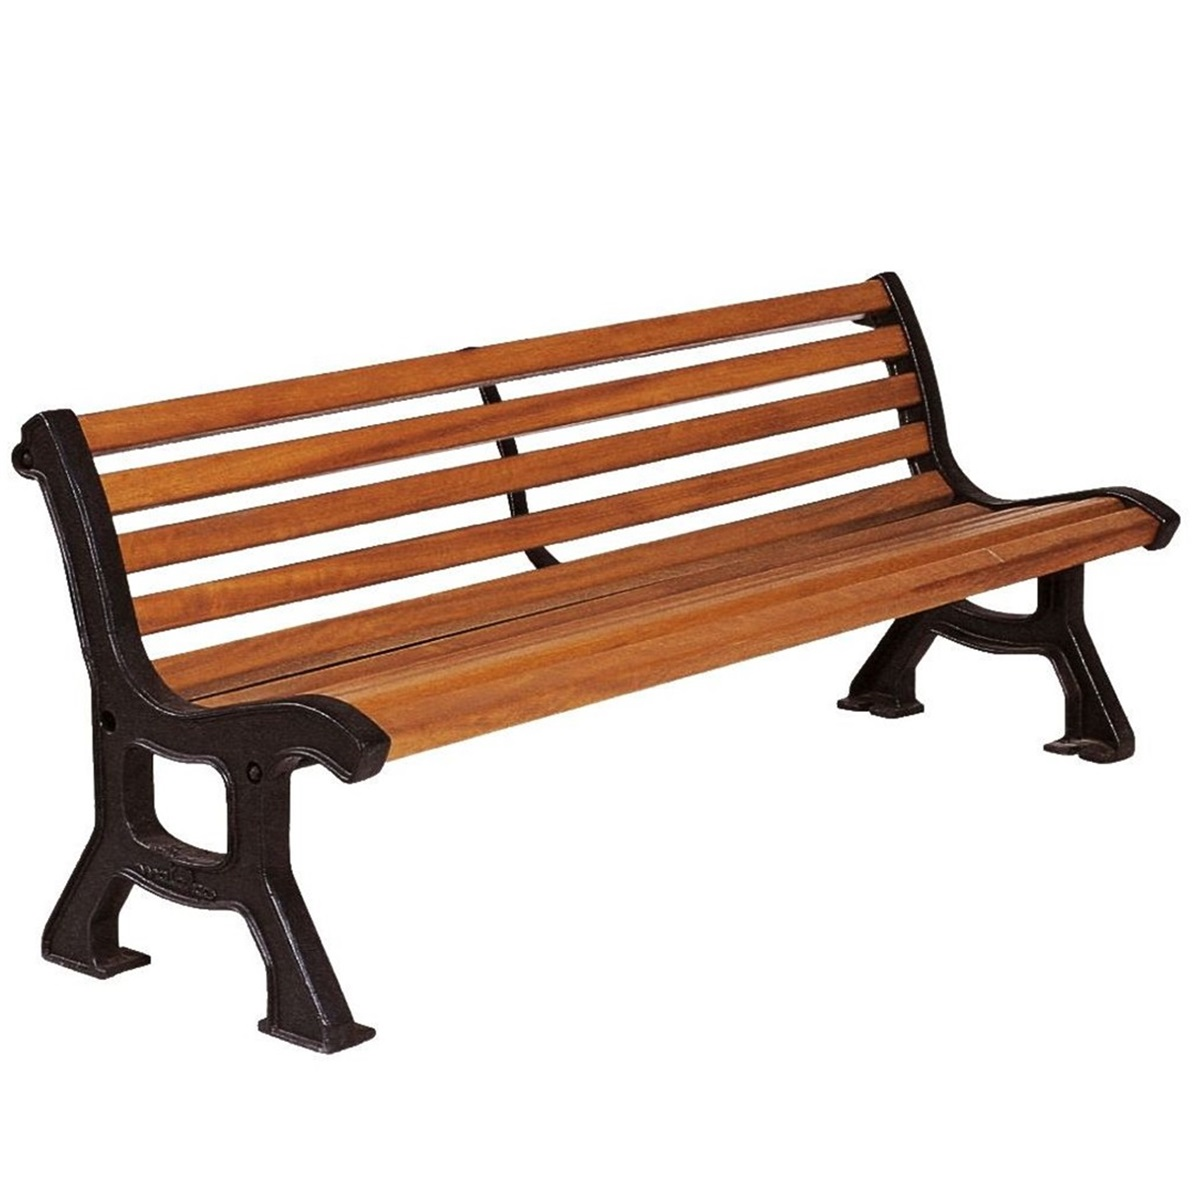 Bastide Bench C-107 zoomed